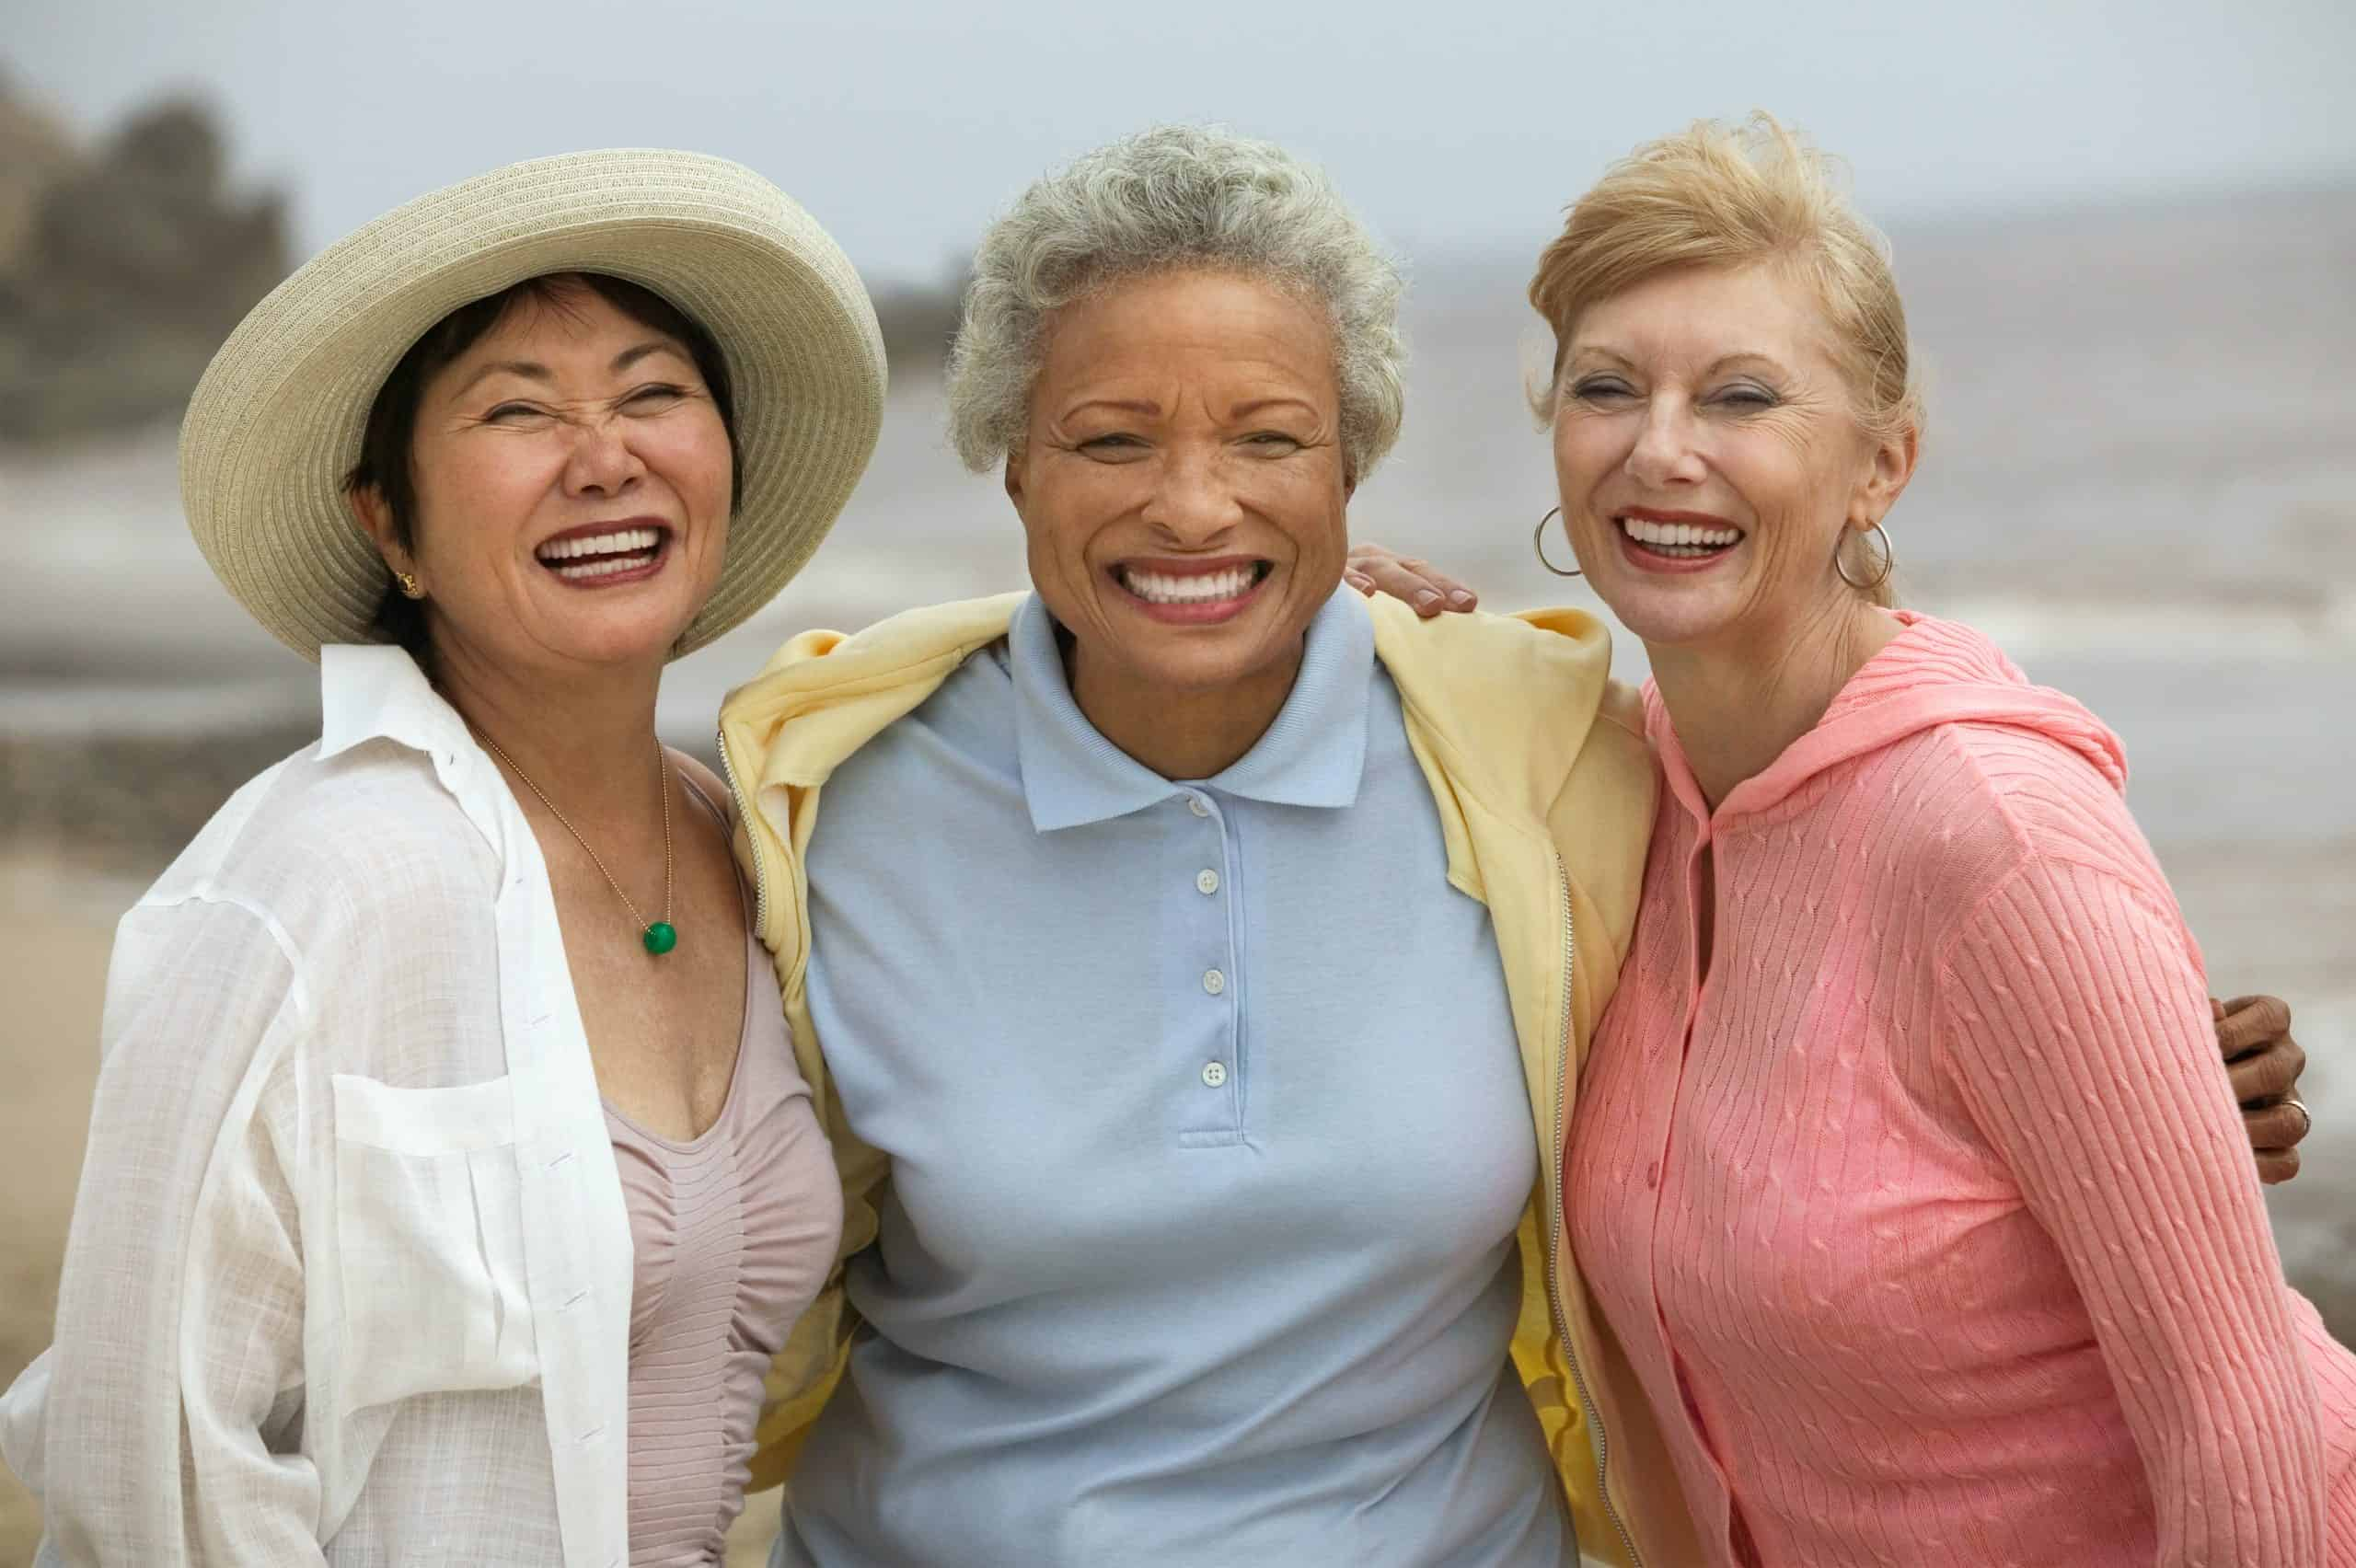 three smiling women of different ethnicity Being OK With their Differences